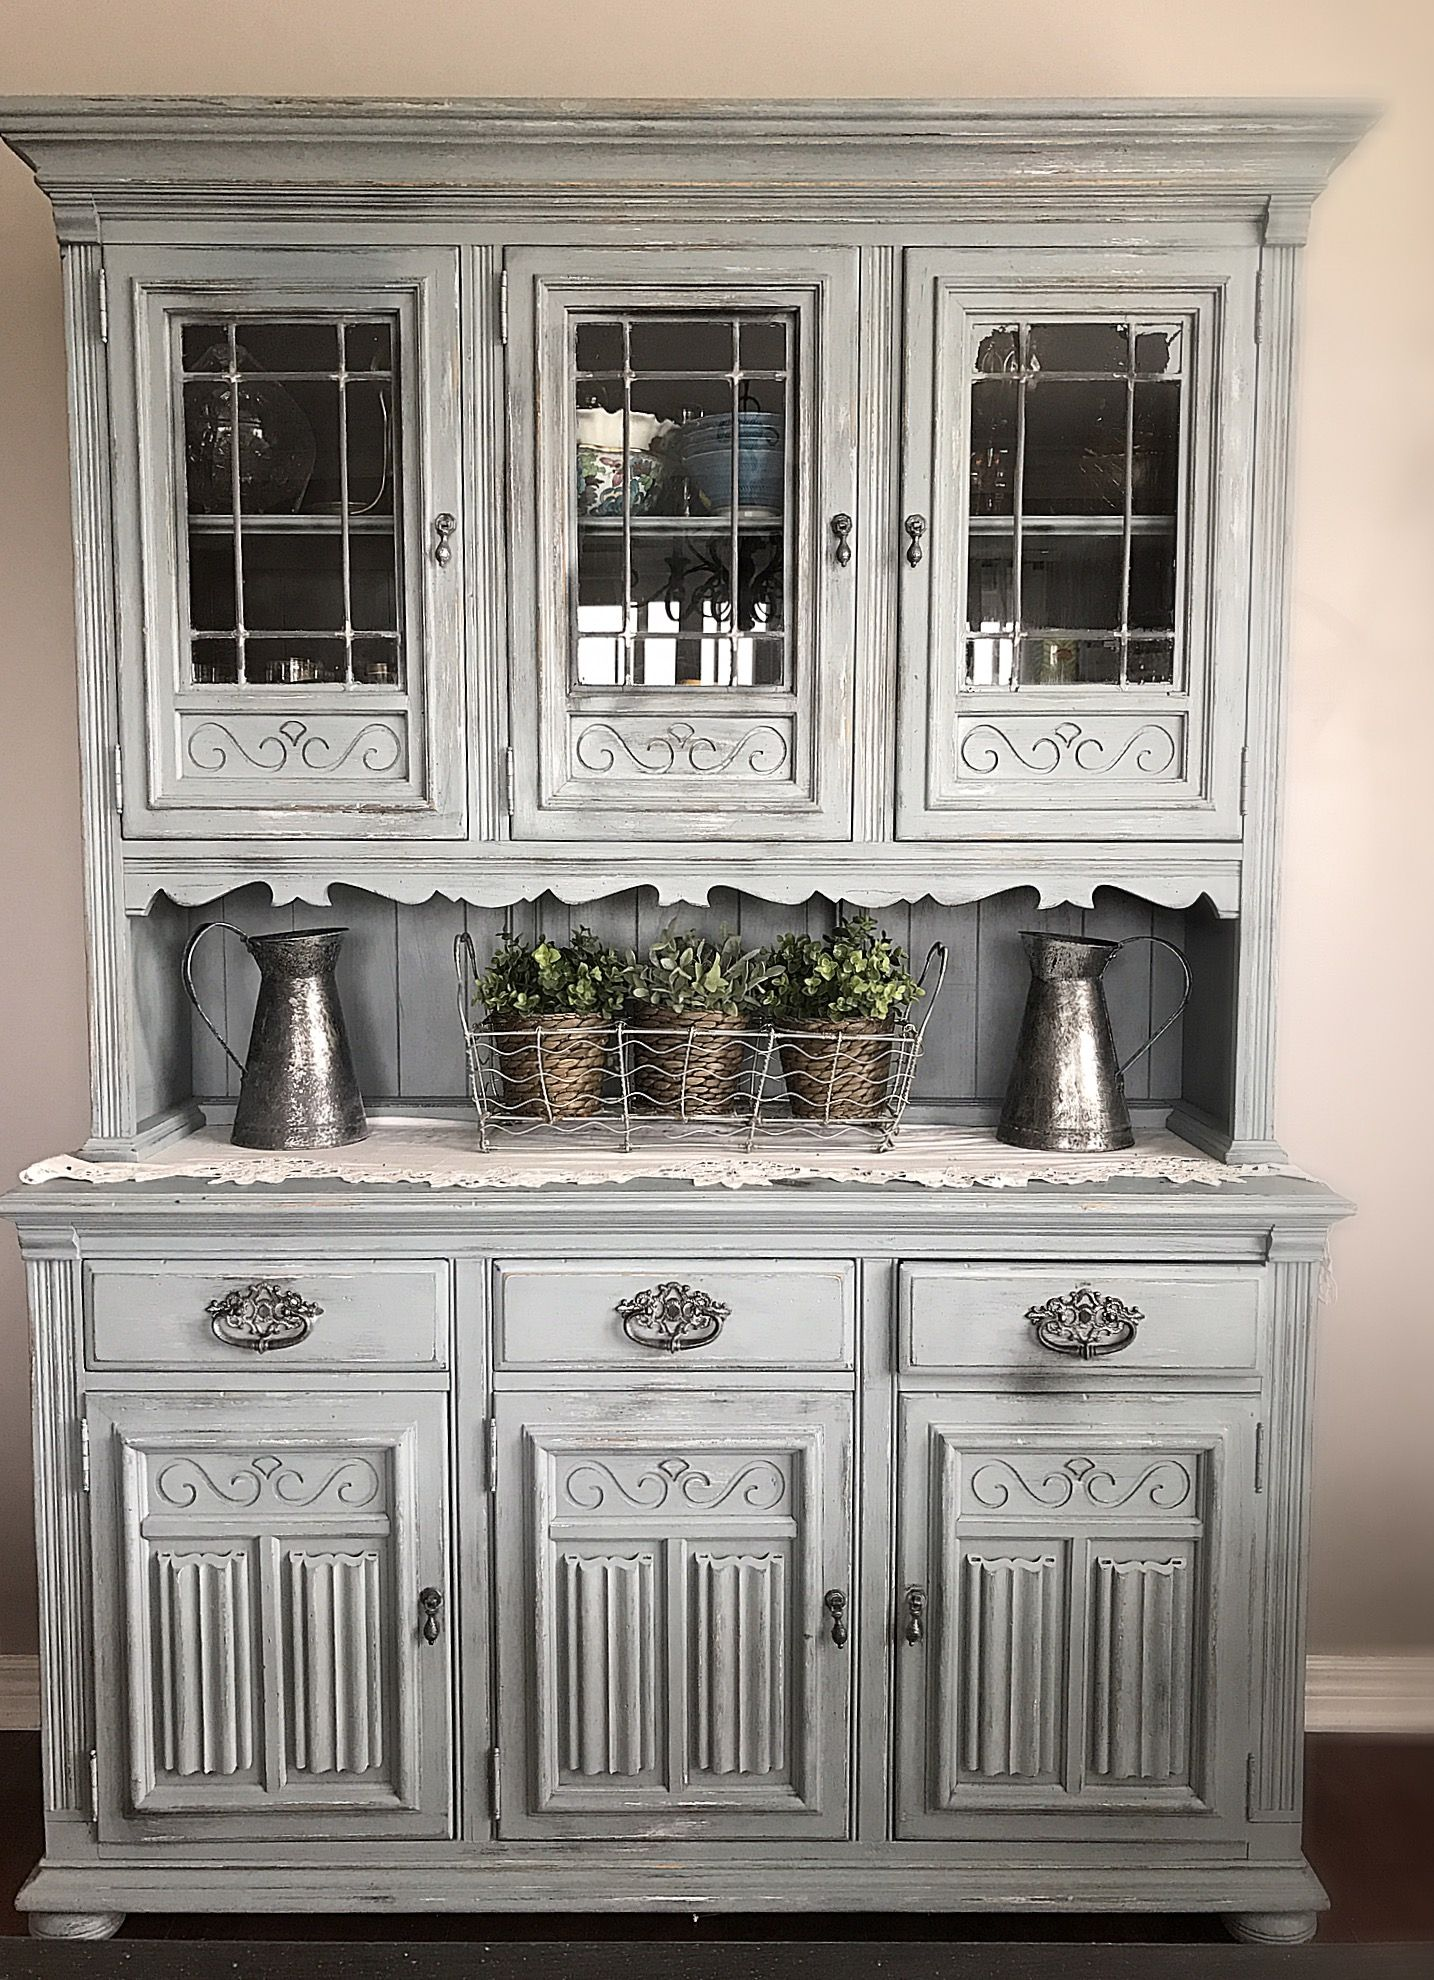 BEAUTIFUL Iced Grey Vintage Rustic Ethan Allen Hutch Dining Room